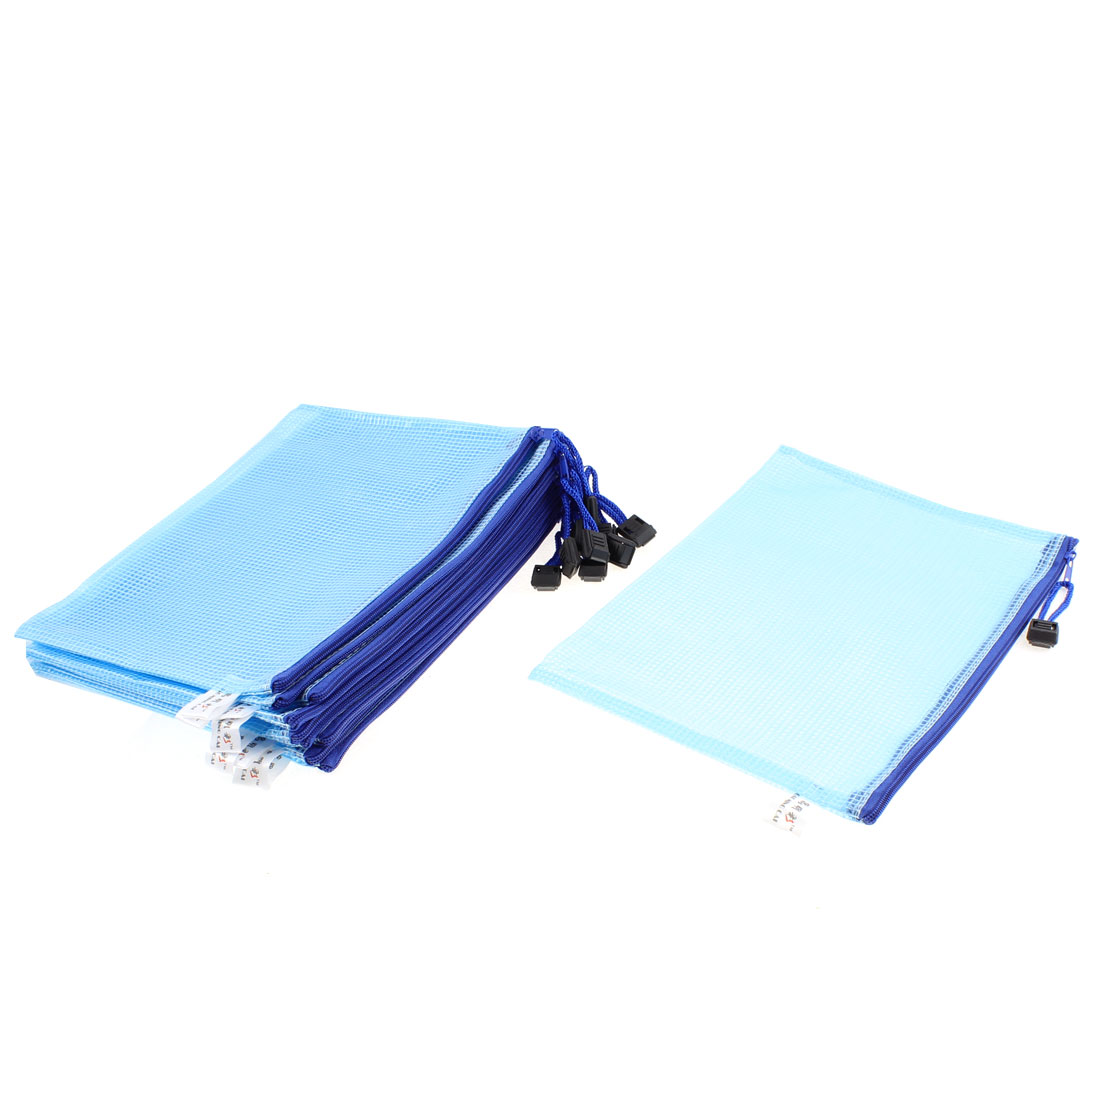 Office Stationery A5 Paper Document Clip File Bag Holder Organizer Blue 10 Pcs